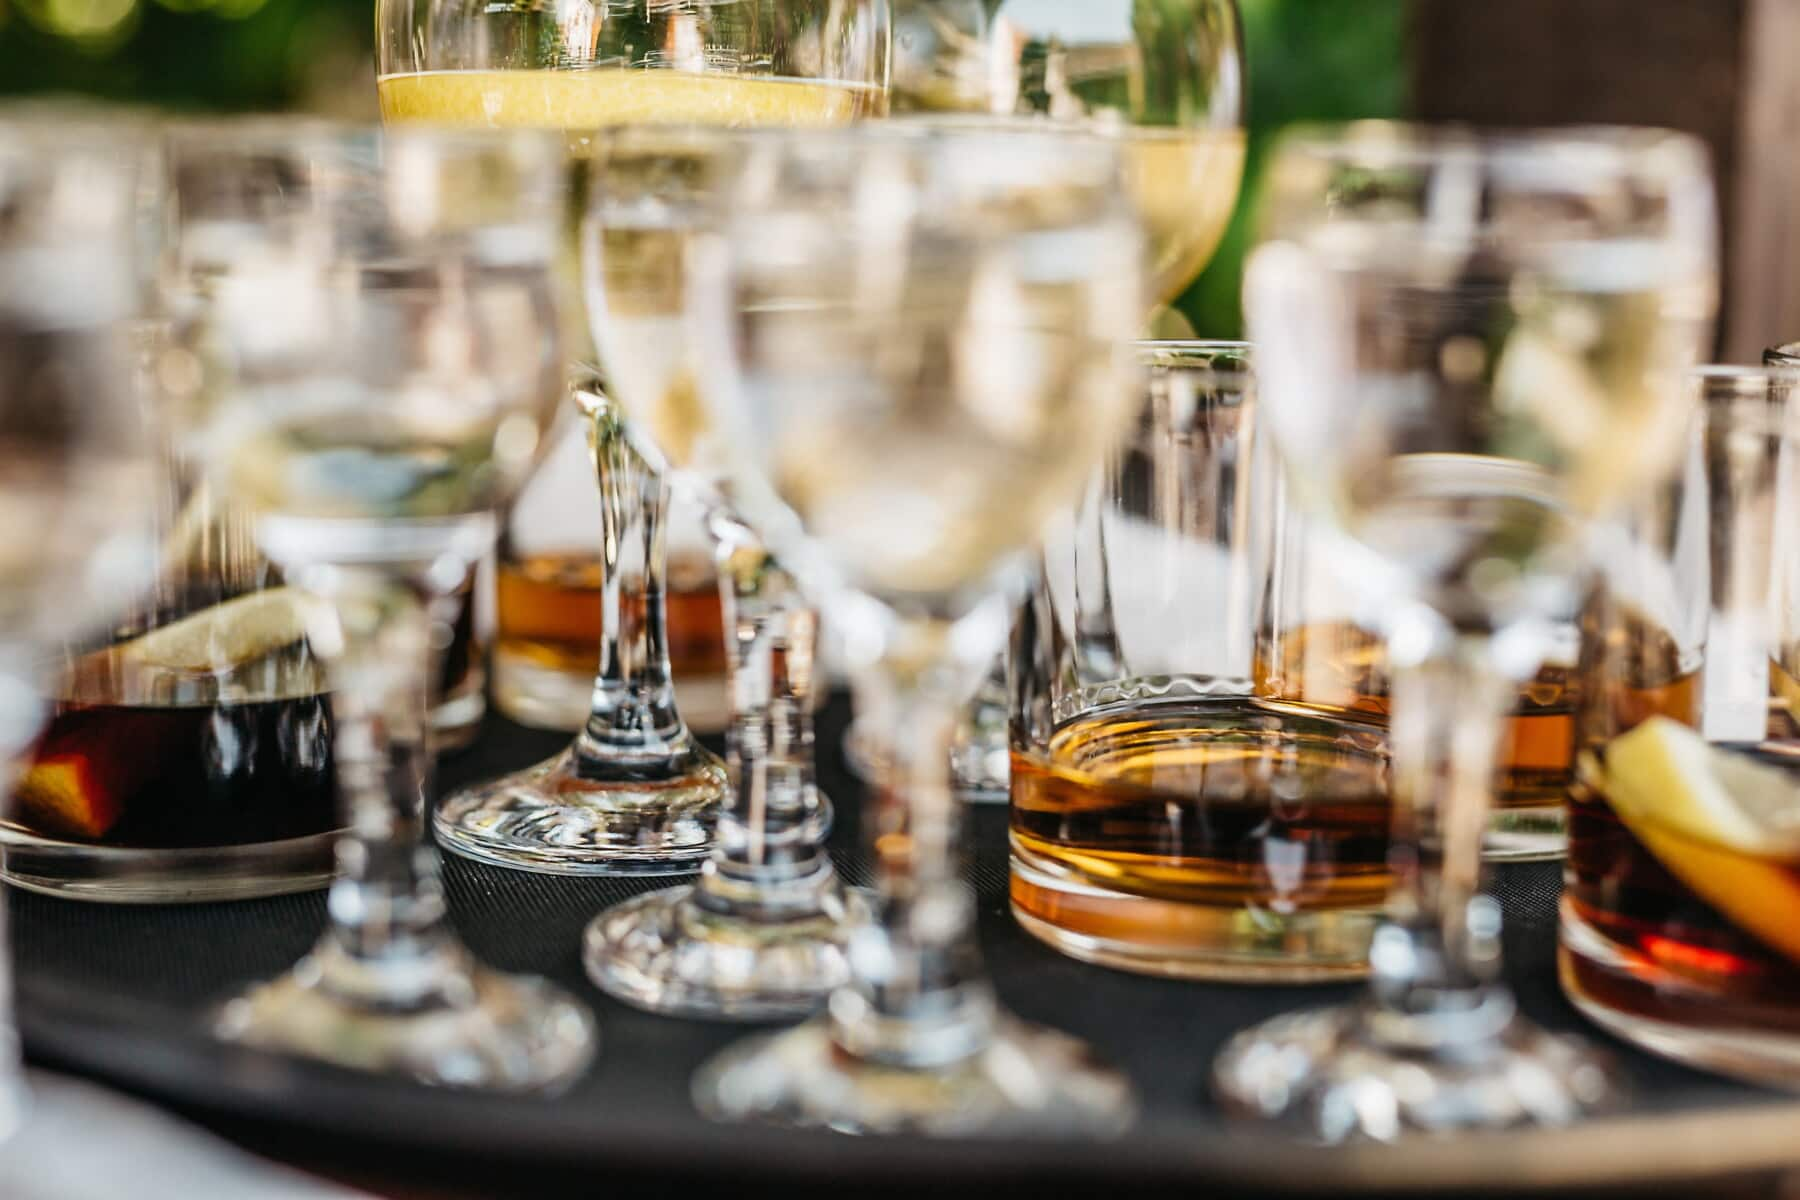 white wine, cocktails, alcohol, glass, banquet, table, wine, drink, dining, luxury